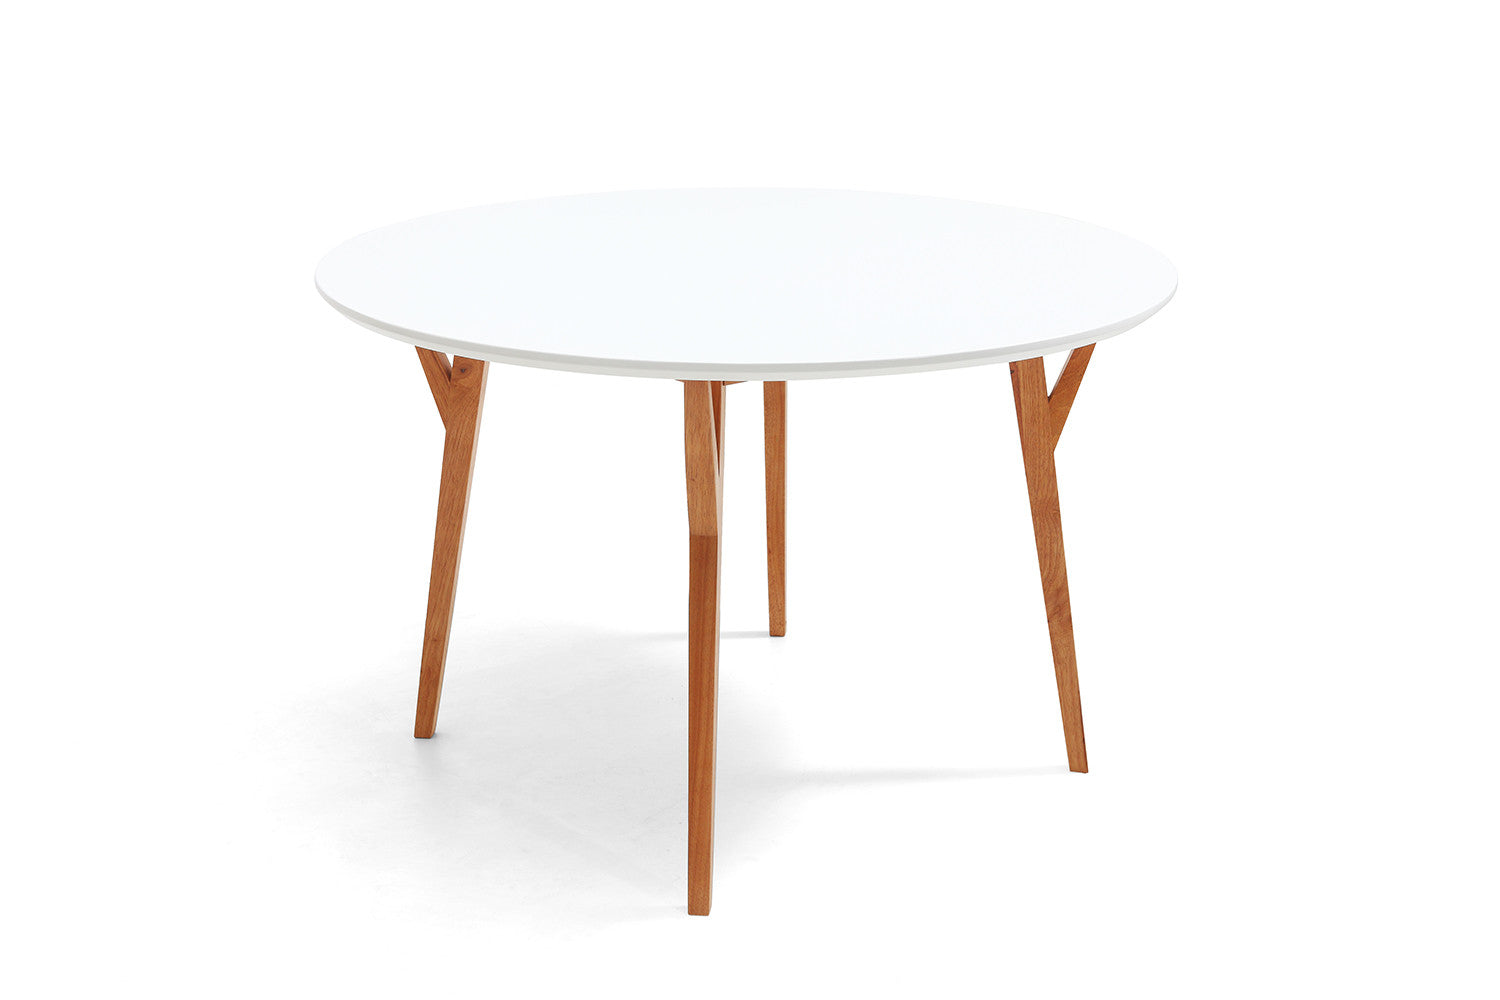 Table de salle manger ronde design scandinave moesa for Table ronde rallonge scandinave